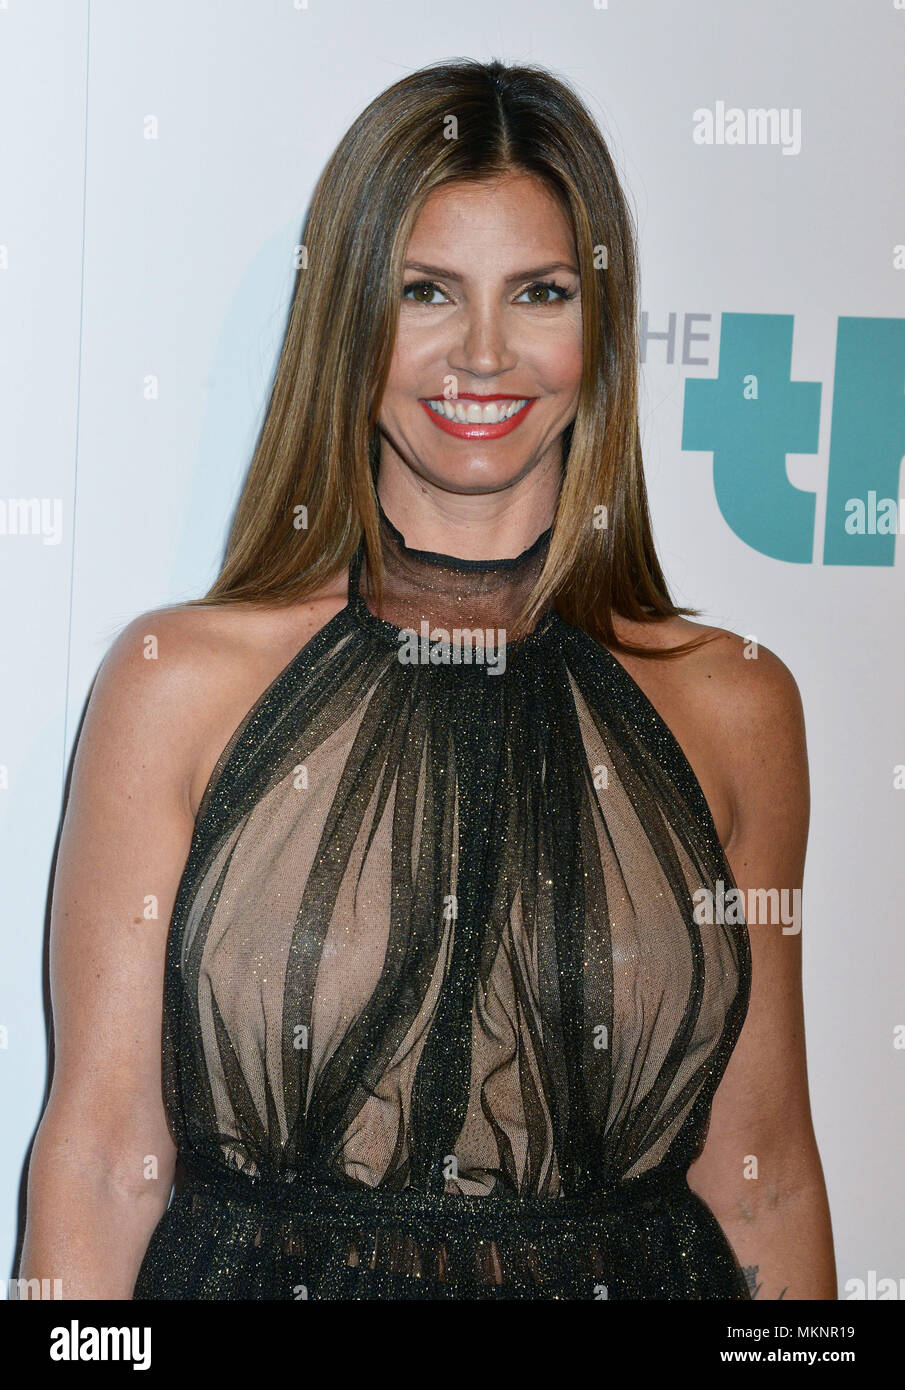 Charisma Carpenter  at the 5th Ann. Thirst Gala at the Beverly Hilton in Los Angeles. Charisma Carpenter 019 Red Carpet Event, Vertical, USA, Film Industry, Celebrities,  Photography, Bestof, Arts Culture and Entertainment, Topix Celebrities fashion /  Vertical, Best of, Event in Hollywood Life - California,  Red Carpet and backstage, USA, Film Industry, Celebrities,  movie celebrities, TV celebrities, Music celebrities, Photography, Bestof, Arts Culture and Entertainment,  Topix, headshot, vertical, one person,, from the year , 2014, inquiry tsuni@Gamma-USA.com - Stock Image